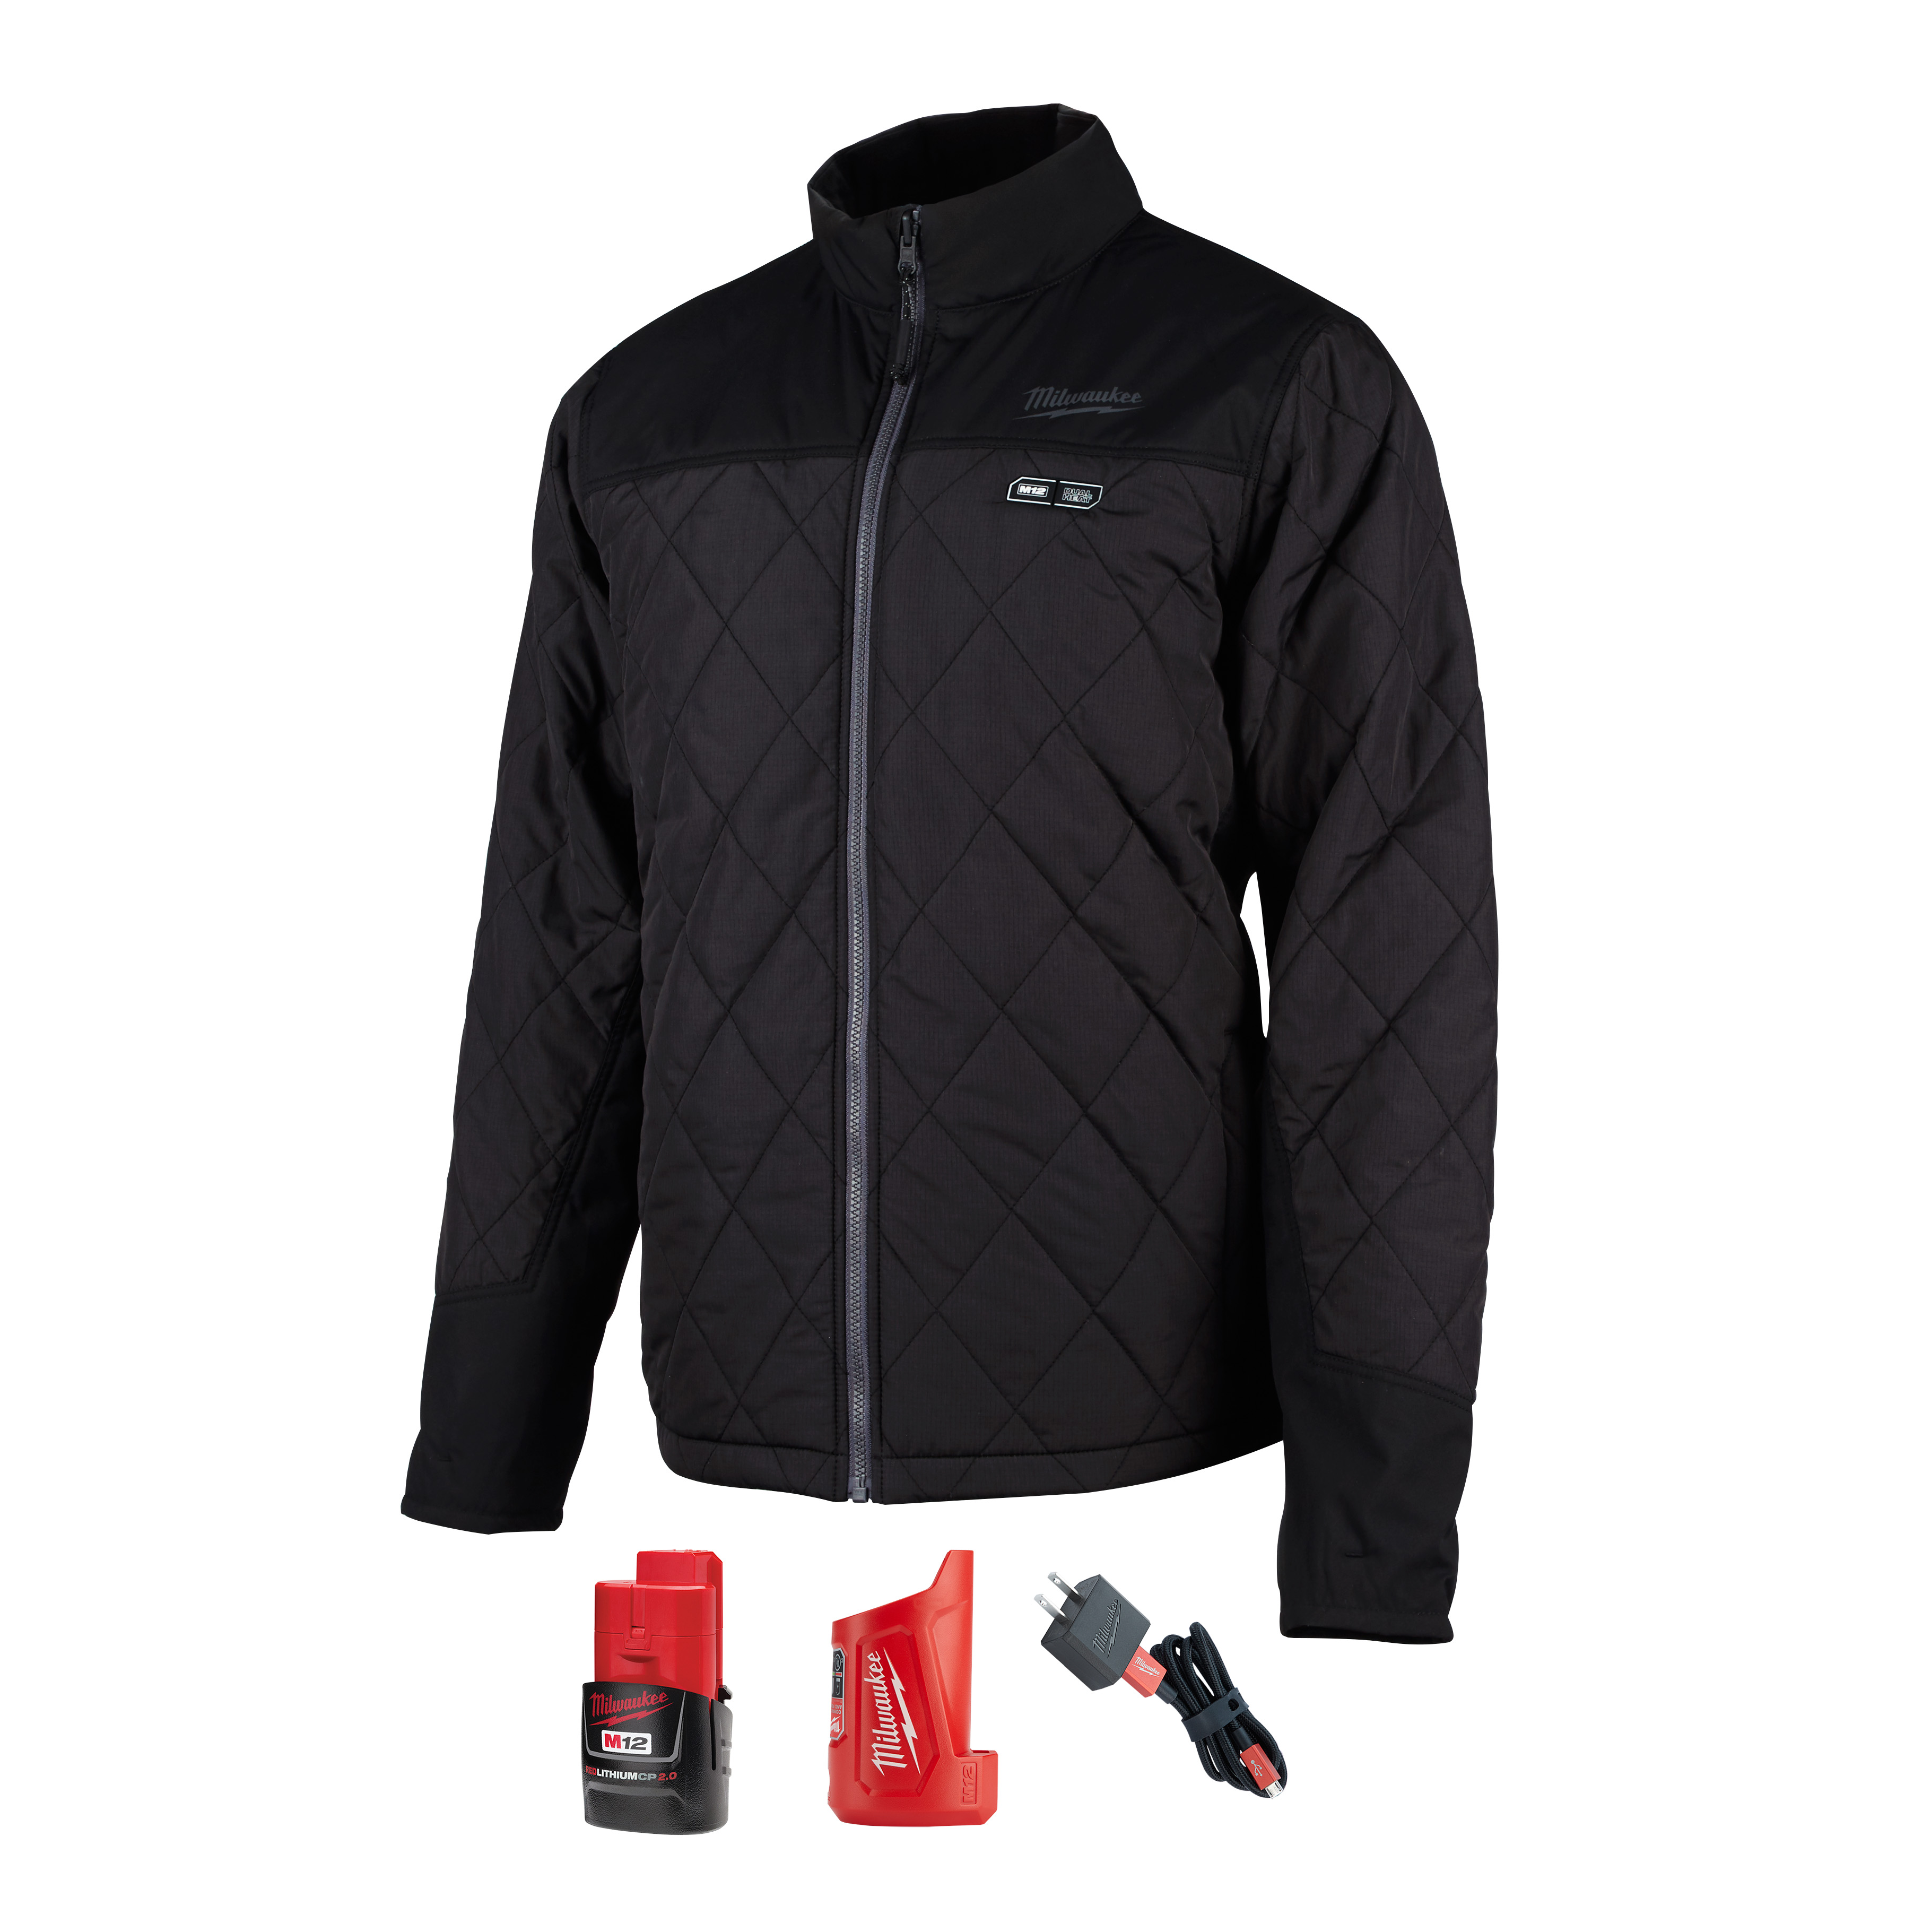 Milwaukee® M12™ 203B-20XL Insulated Heated Jacket, XL, Black, Polyester/Brushed Tricot Lining, 44 to 46 in Chest, Resists: Water and Wind